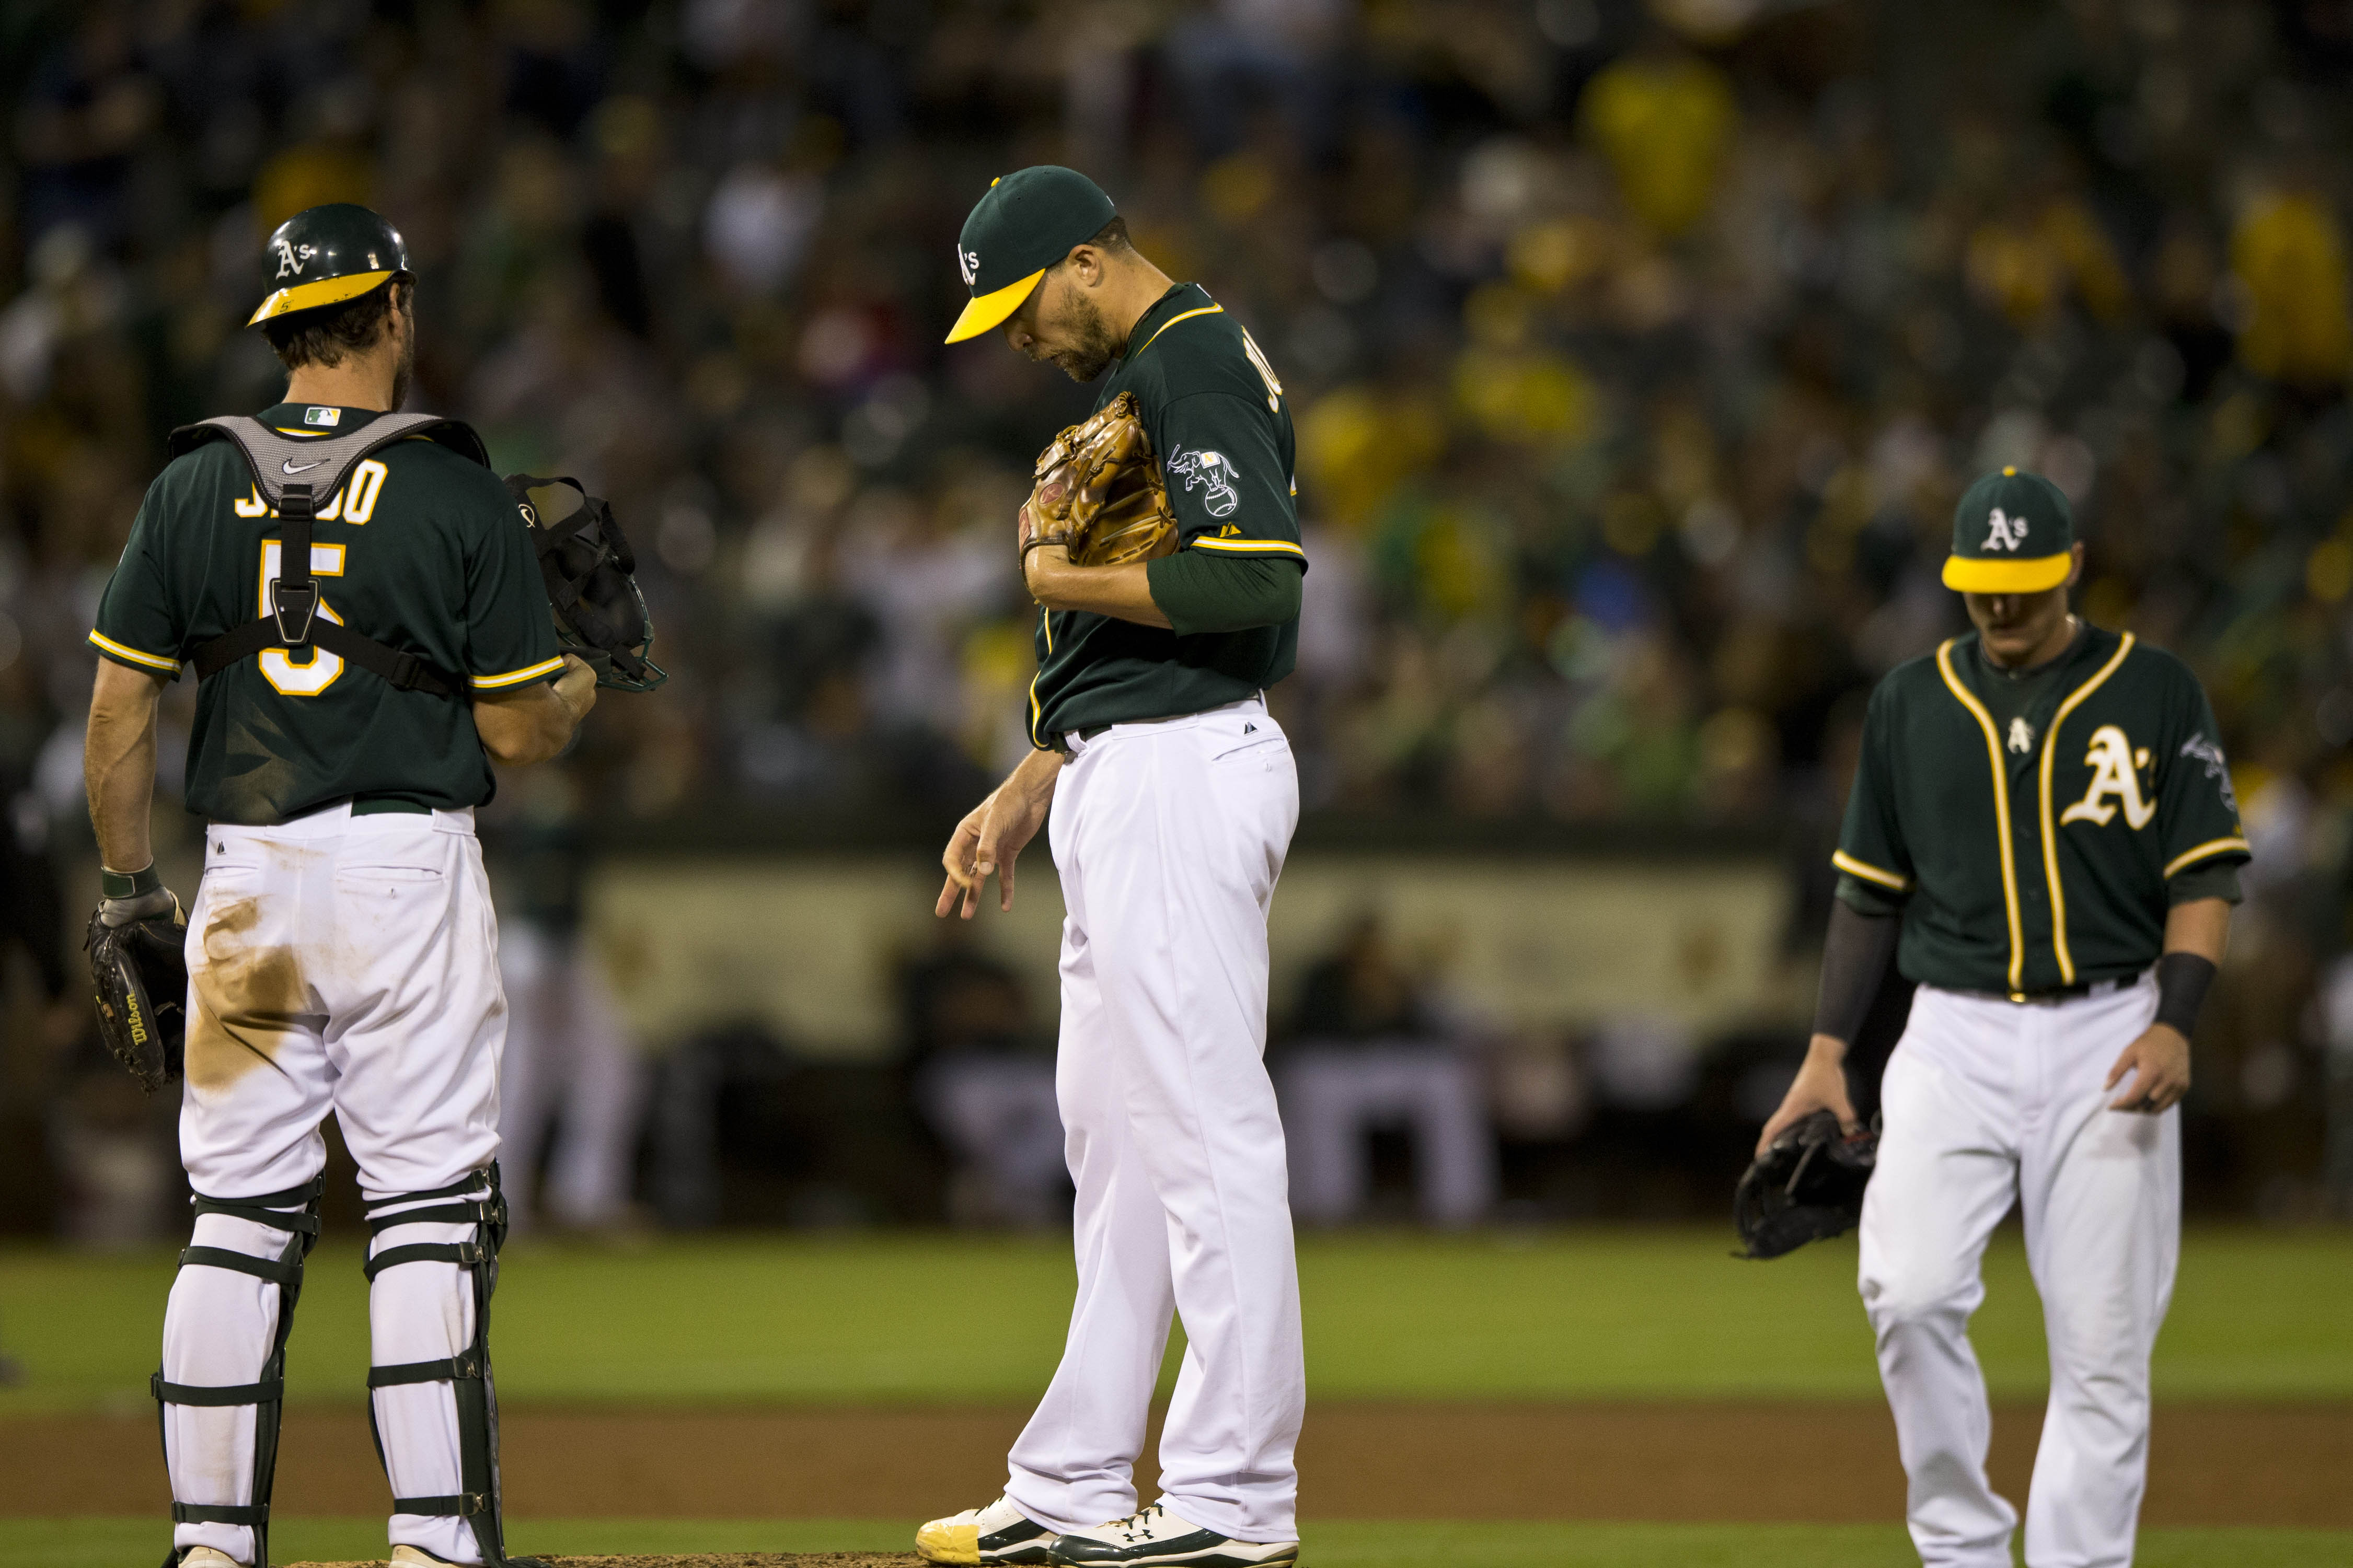 The Oakland A's Jim Johnson, center, on the  mound Wednesday night during the latest in a string of disastrous outings. (Jason O. Watson/Getty Images)